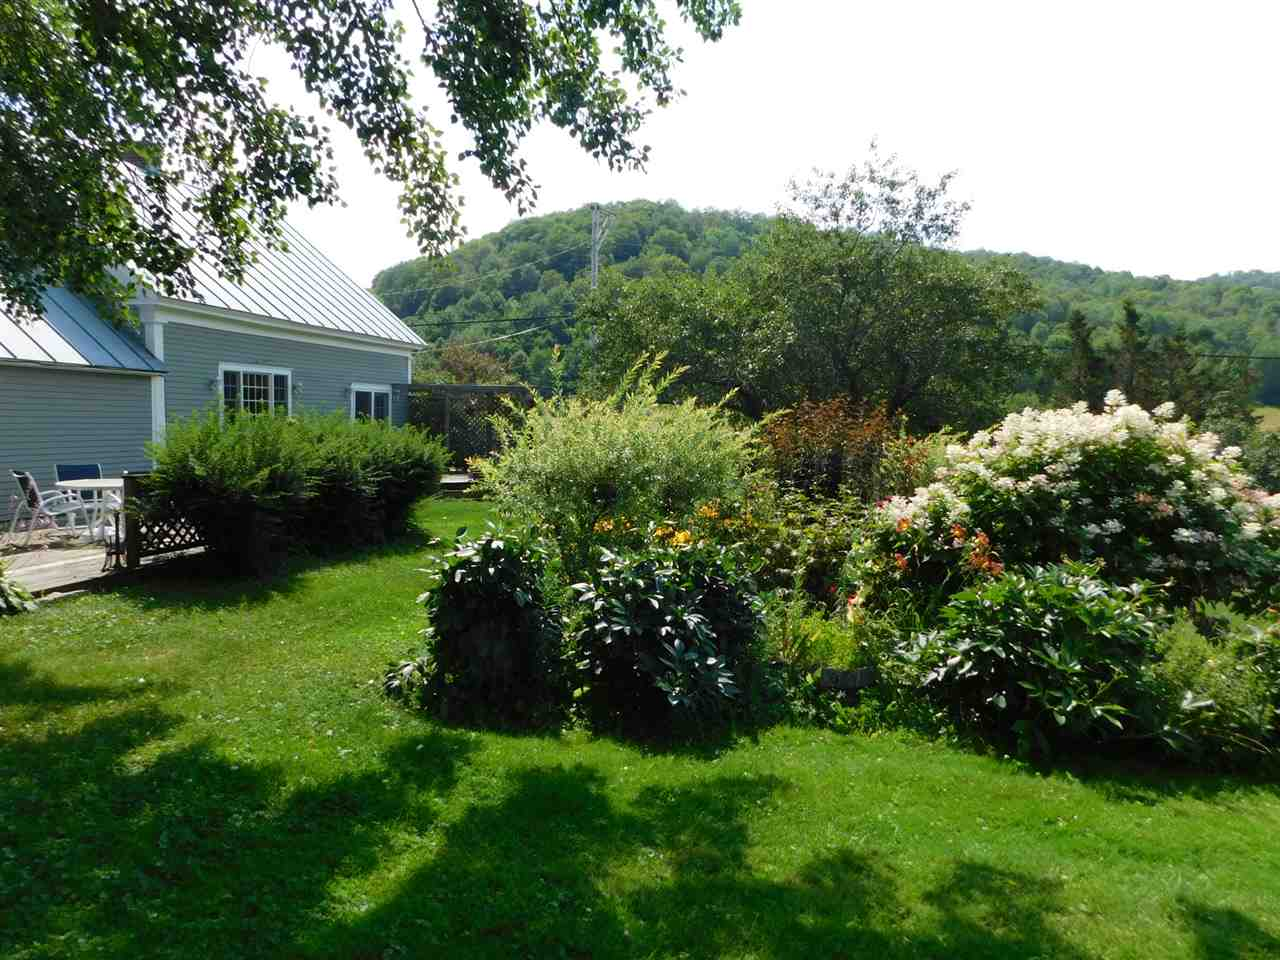 MLS 4702115: 3 Alger Brook Road, Strafford VT